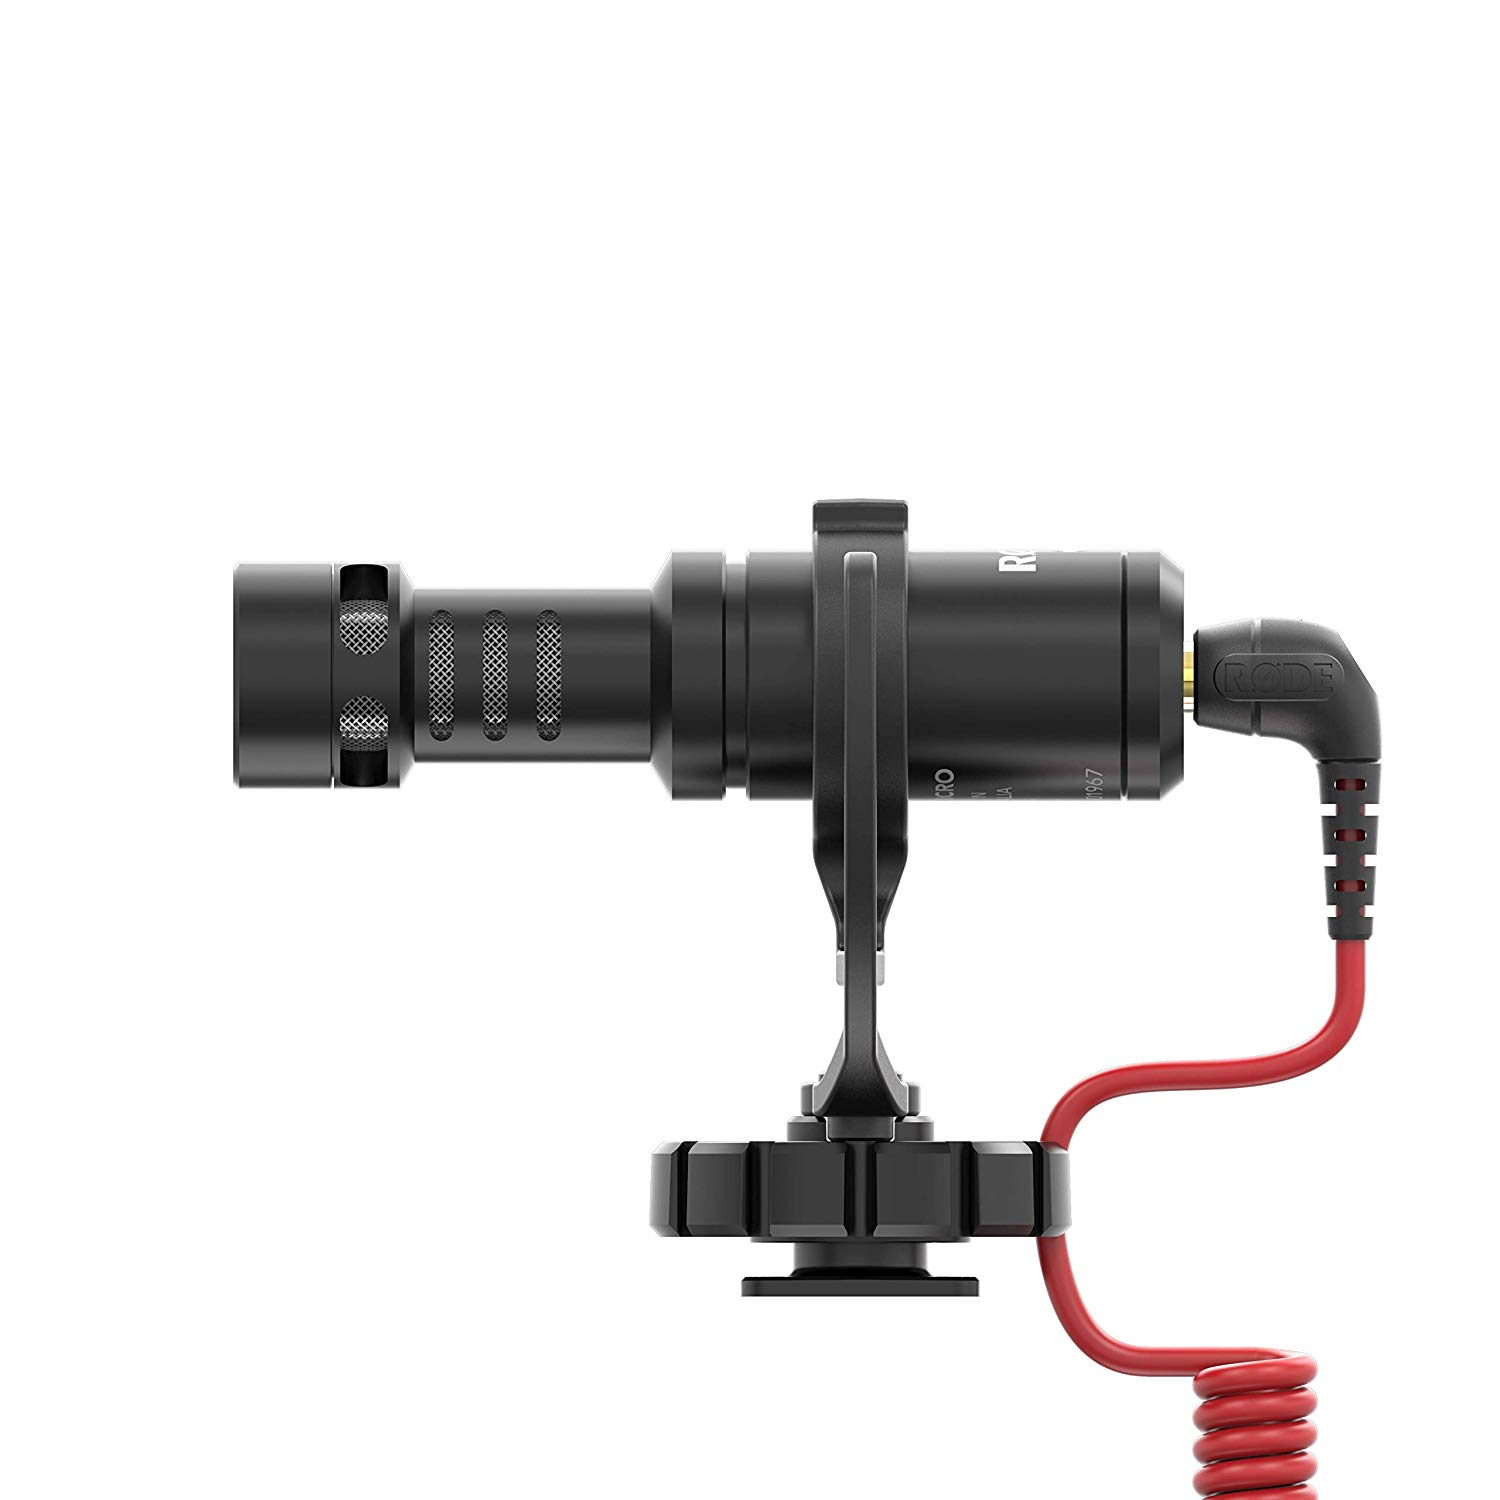 Easy-to-carry, no battery needed and light weight microphone